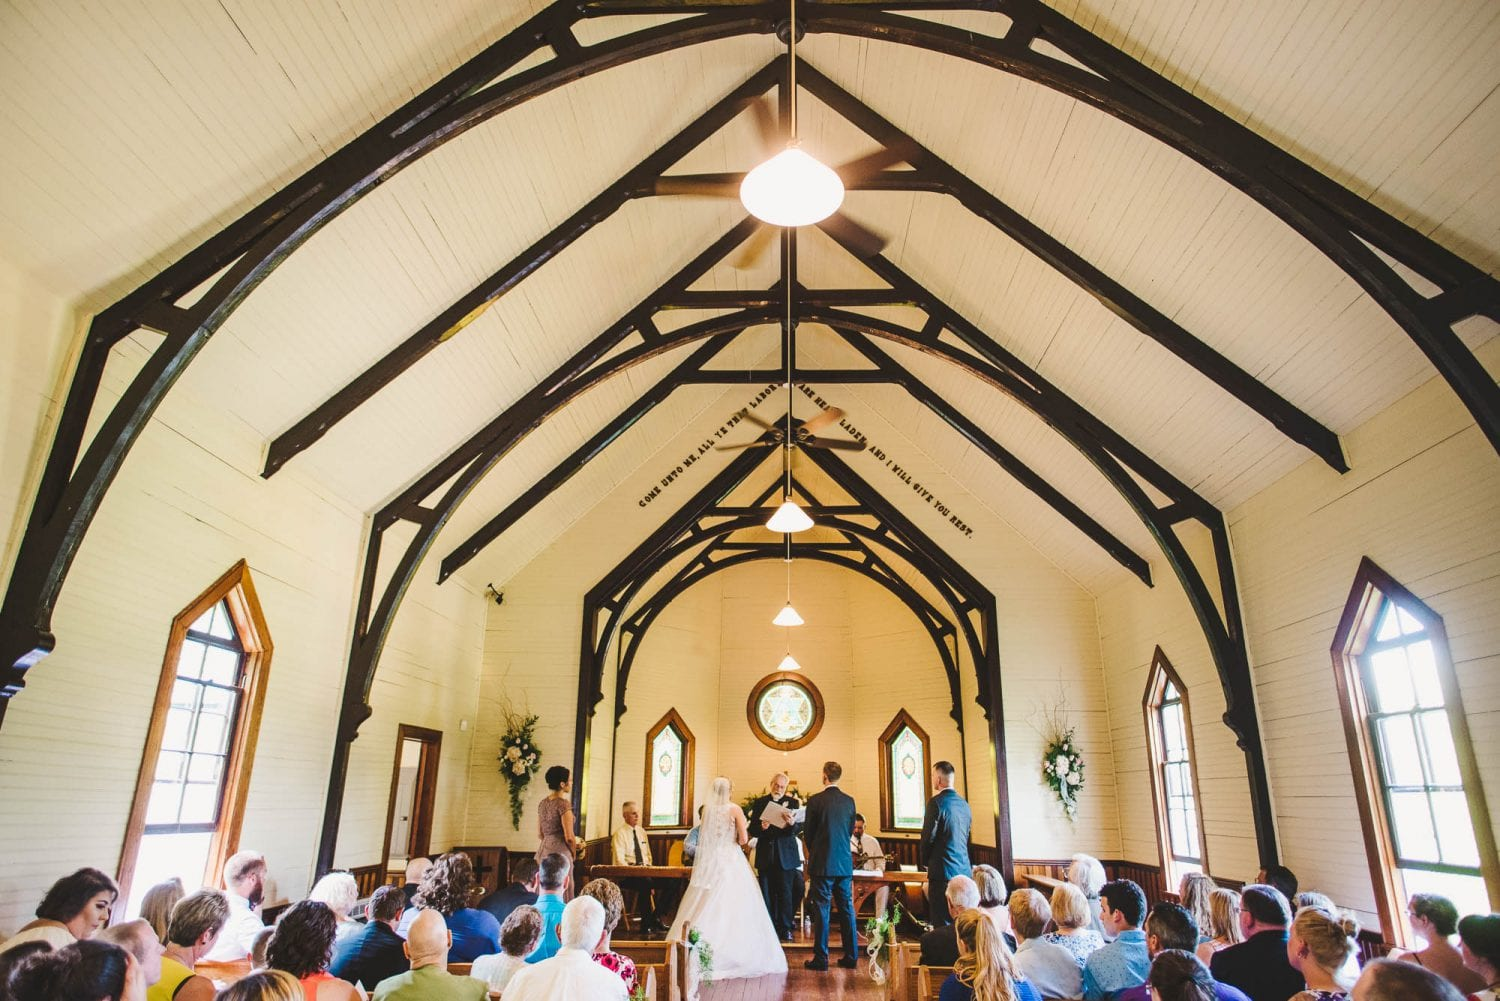 Chapel of Rest wedding